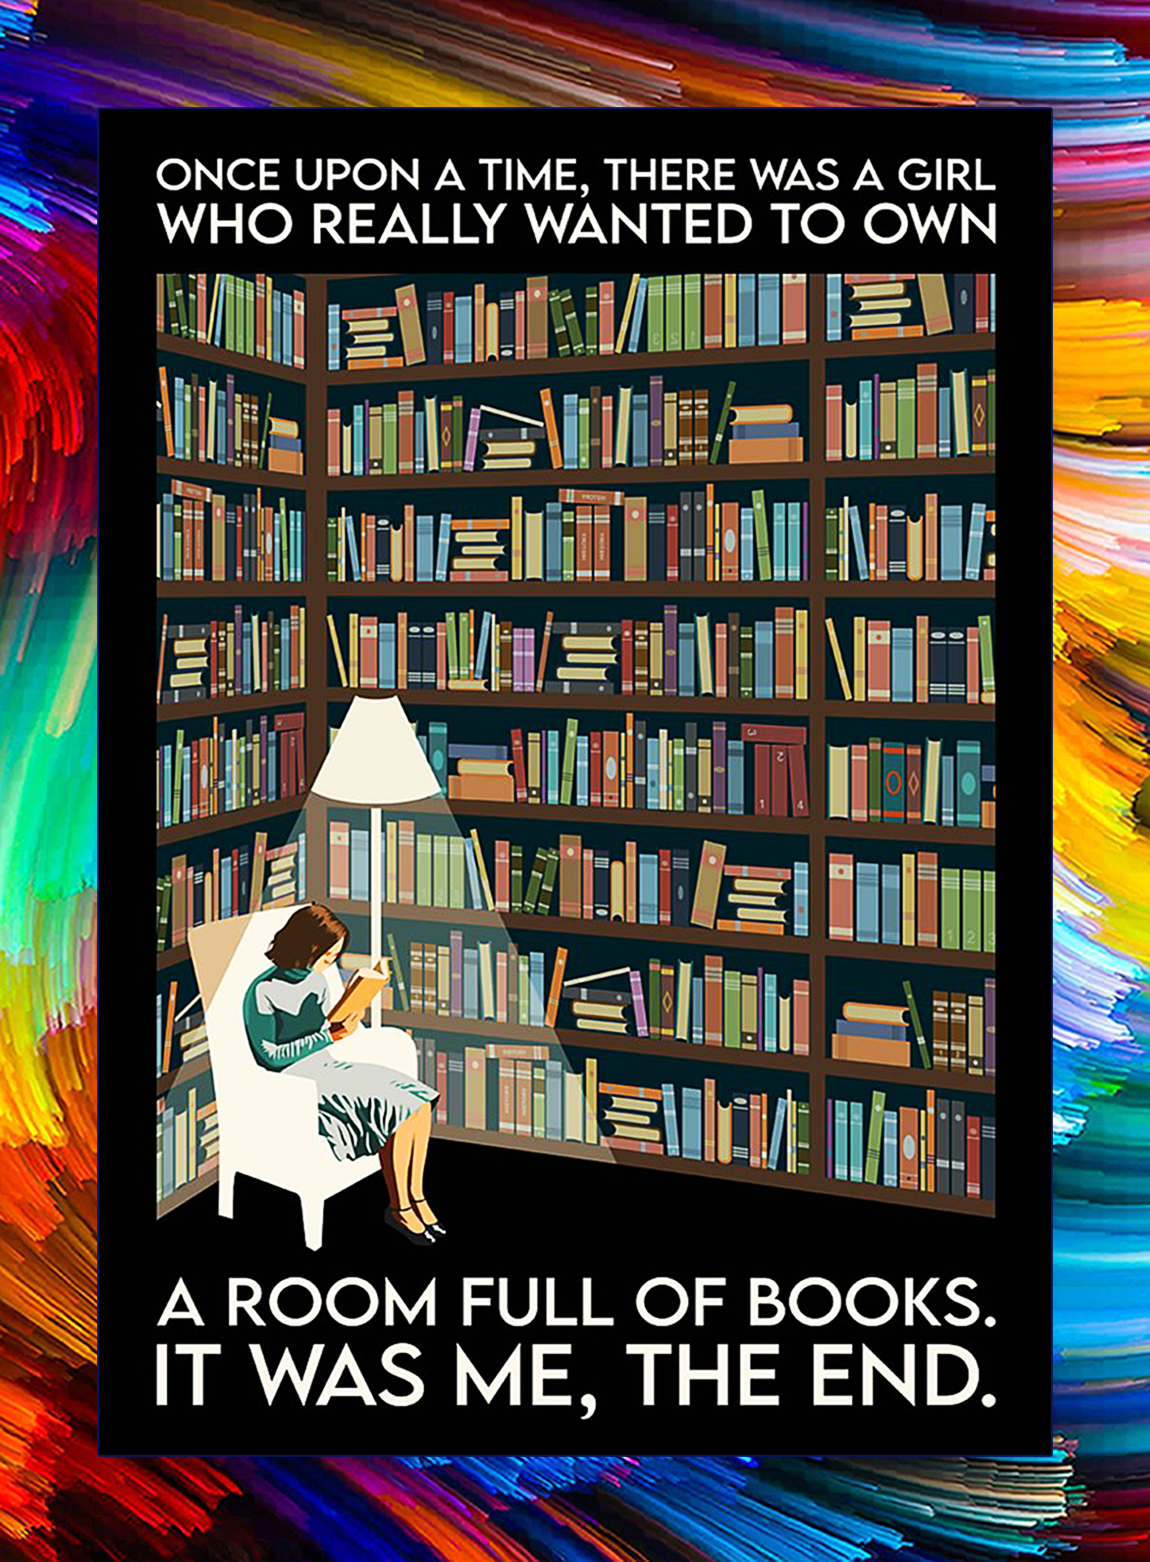 Once upon a time there was a girl who really wanted to own a room full of books poster - A2